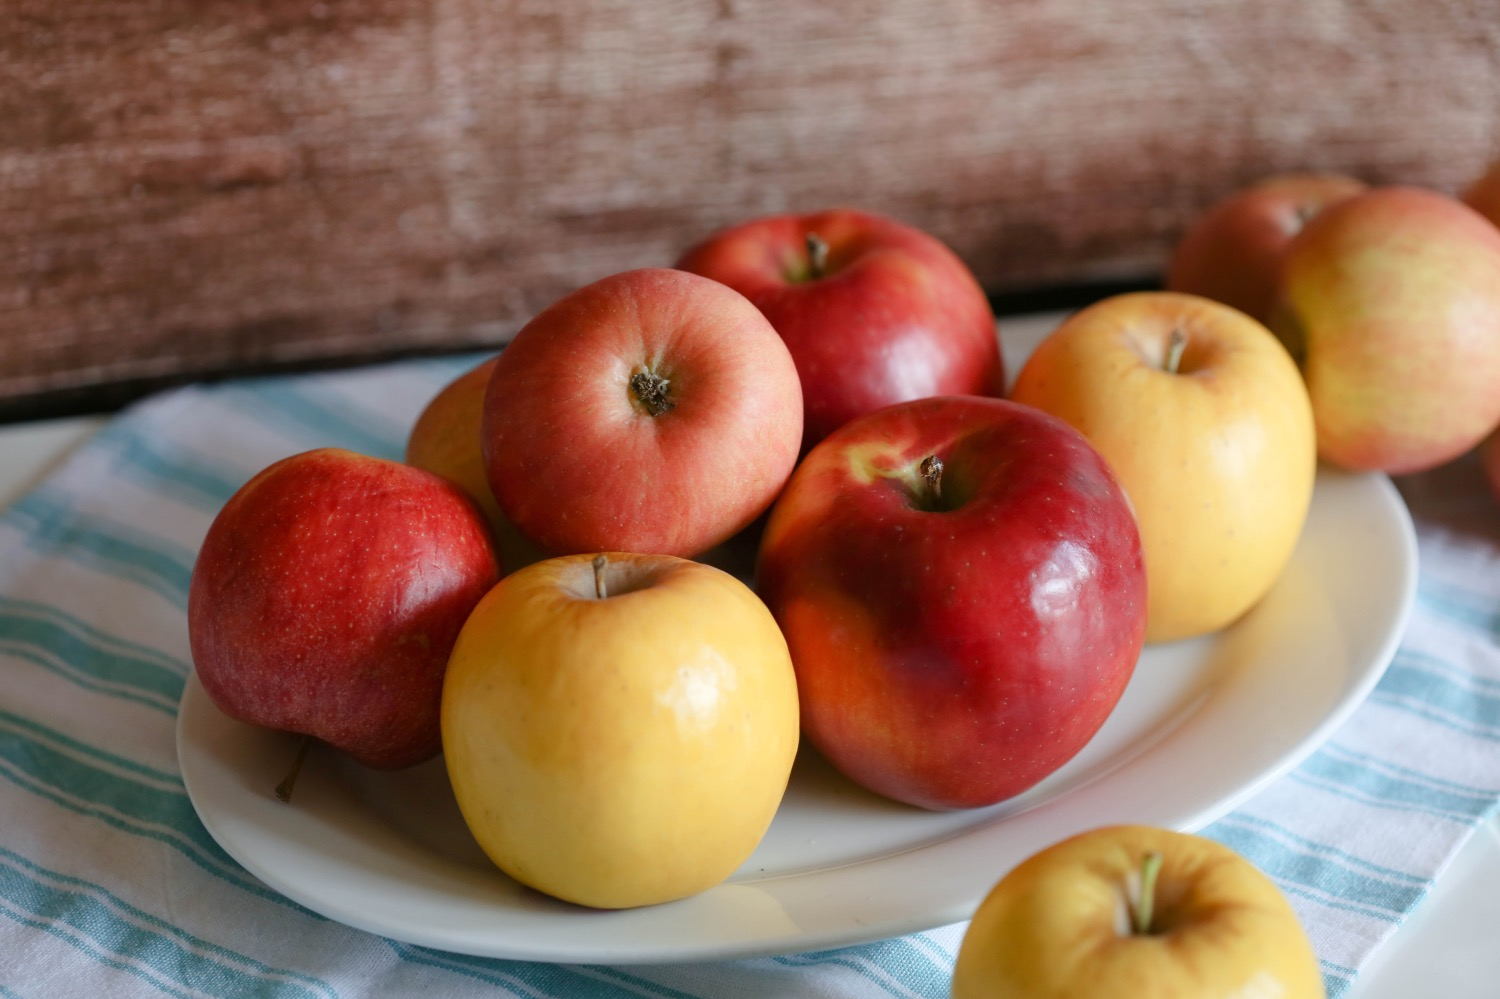 apples to make into baked apples recipe